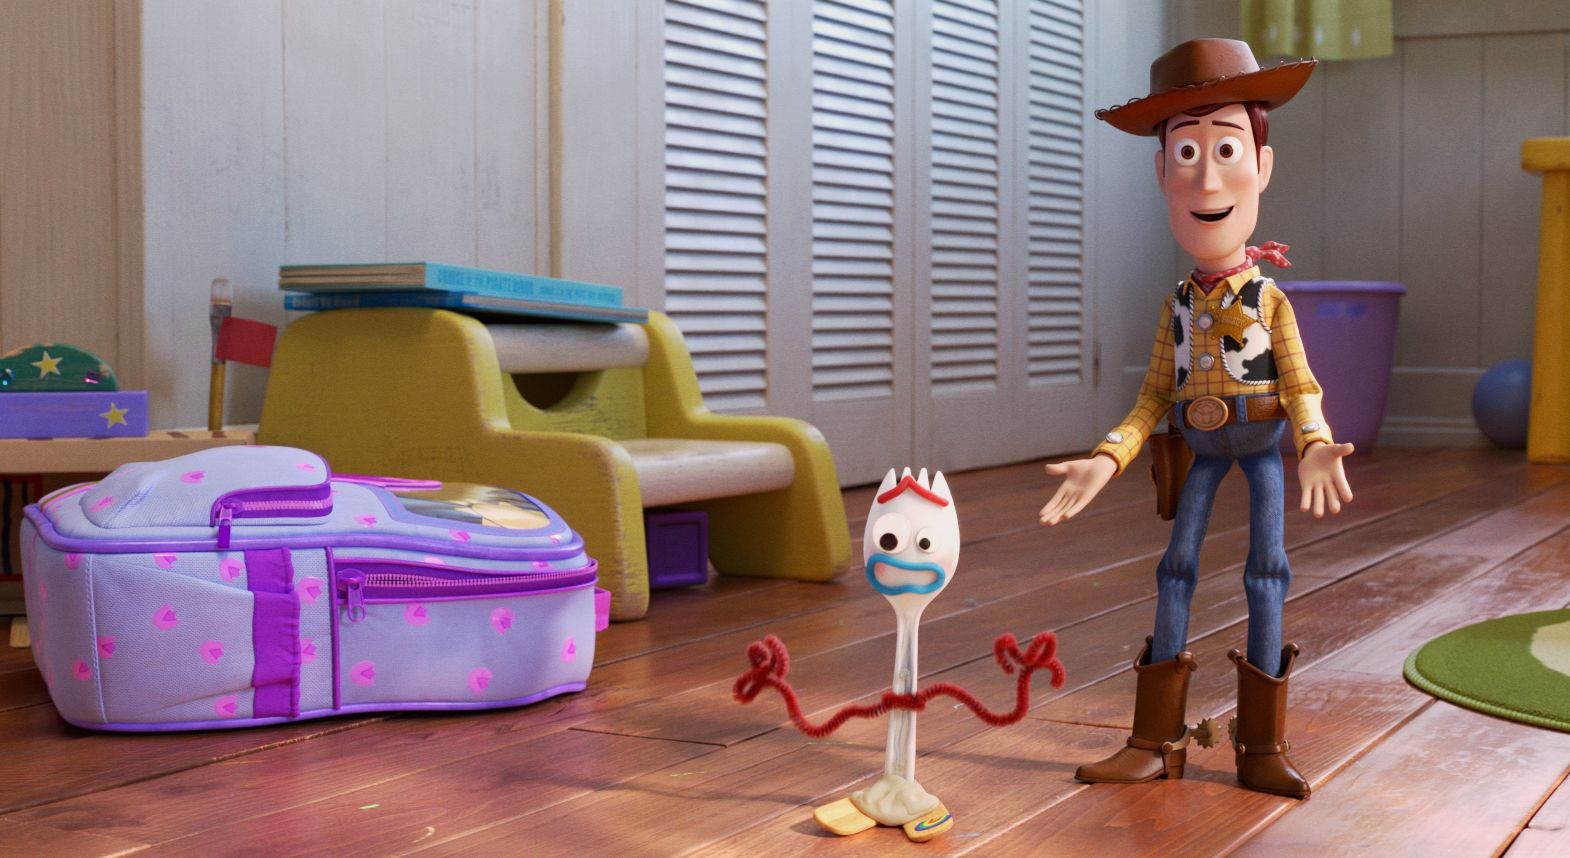 Toy Story 4: Forky Explained and the Rules of Being a Toy in Pixar's World - Collider.com